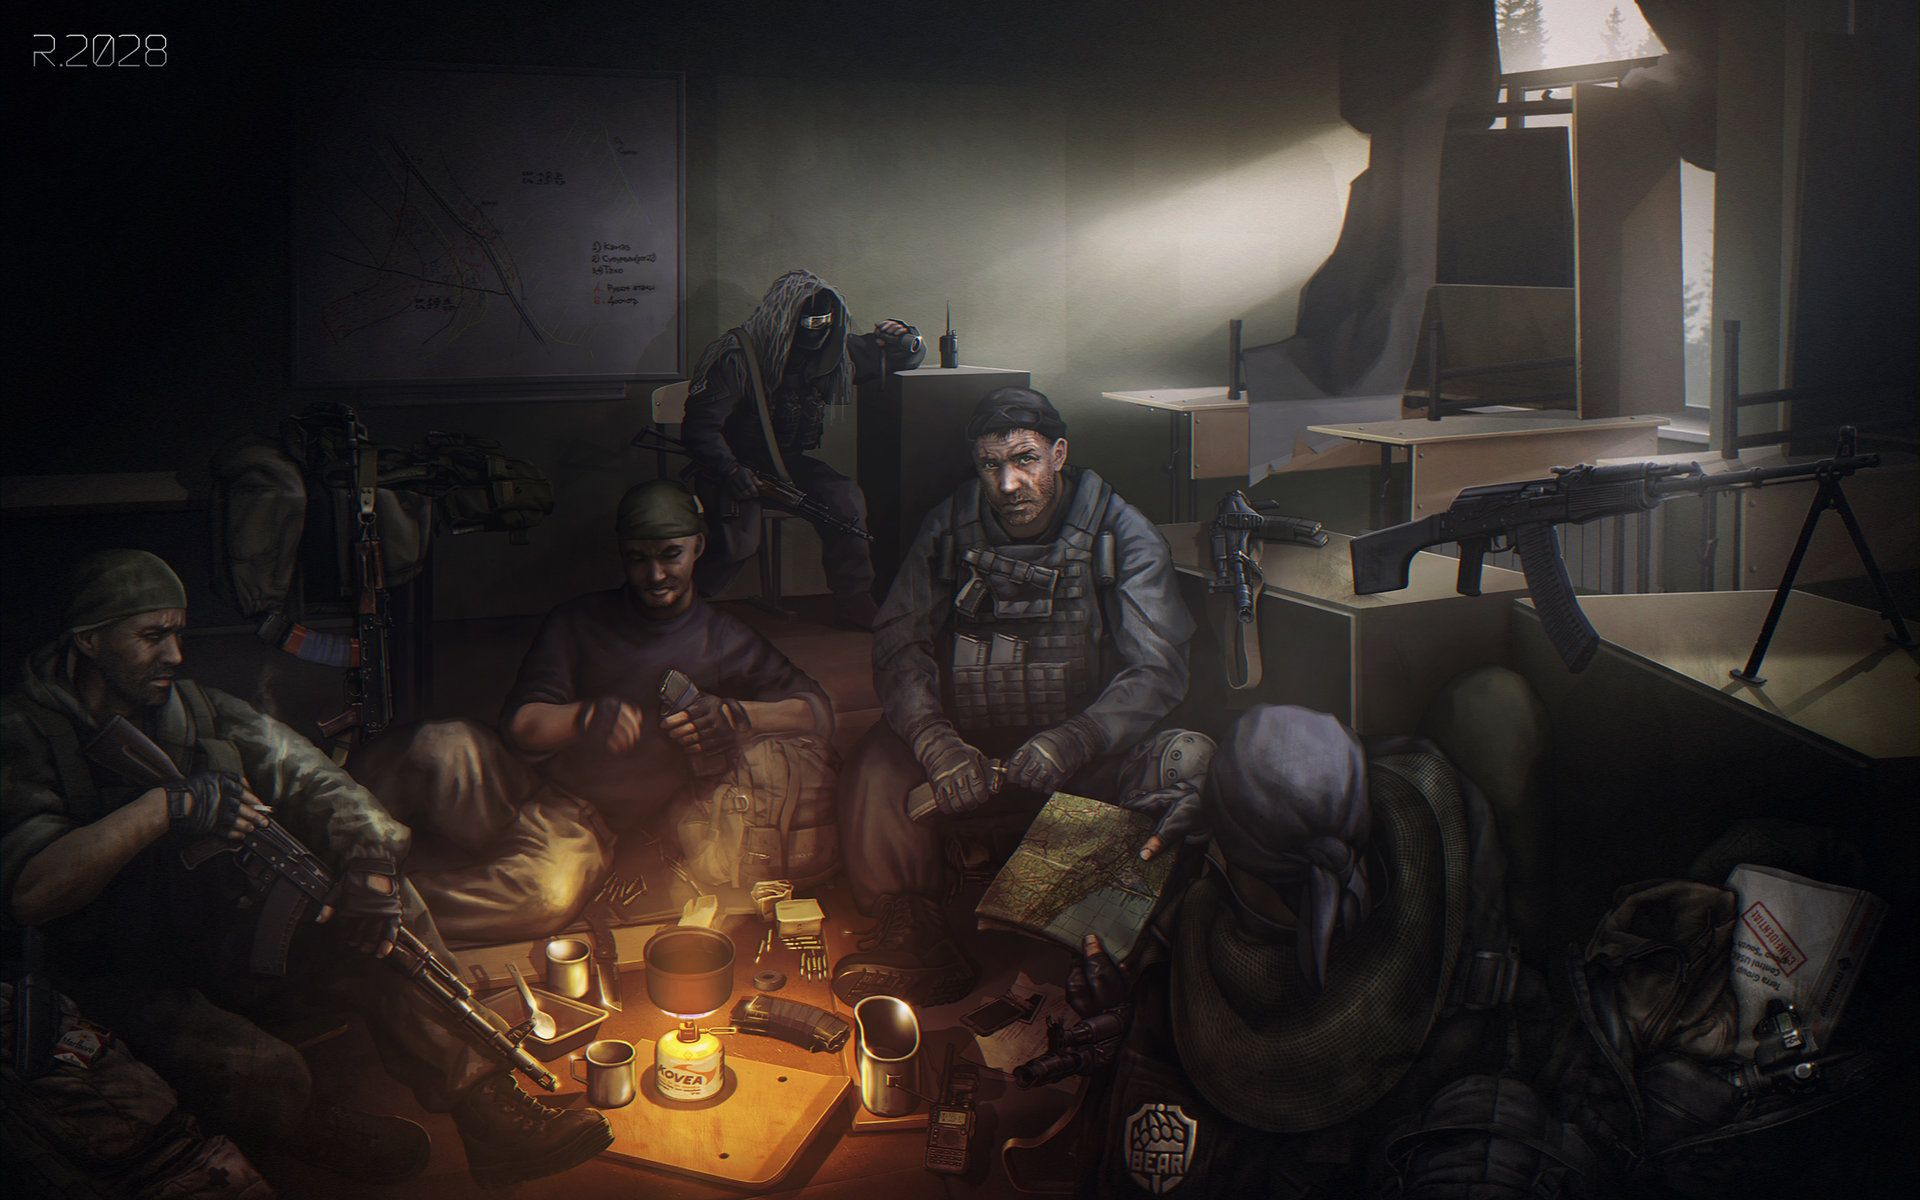 Pin By Jack Stubblefield On Concept Art Escape From Tarkov Art Post Apocalypse